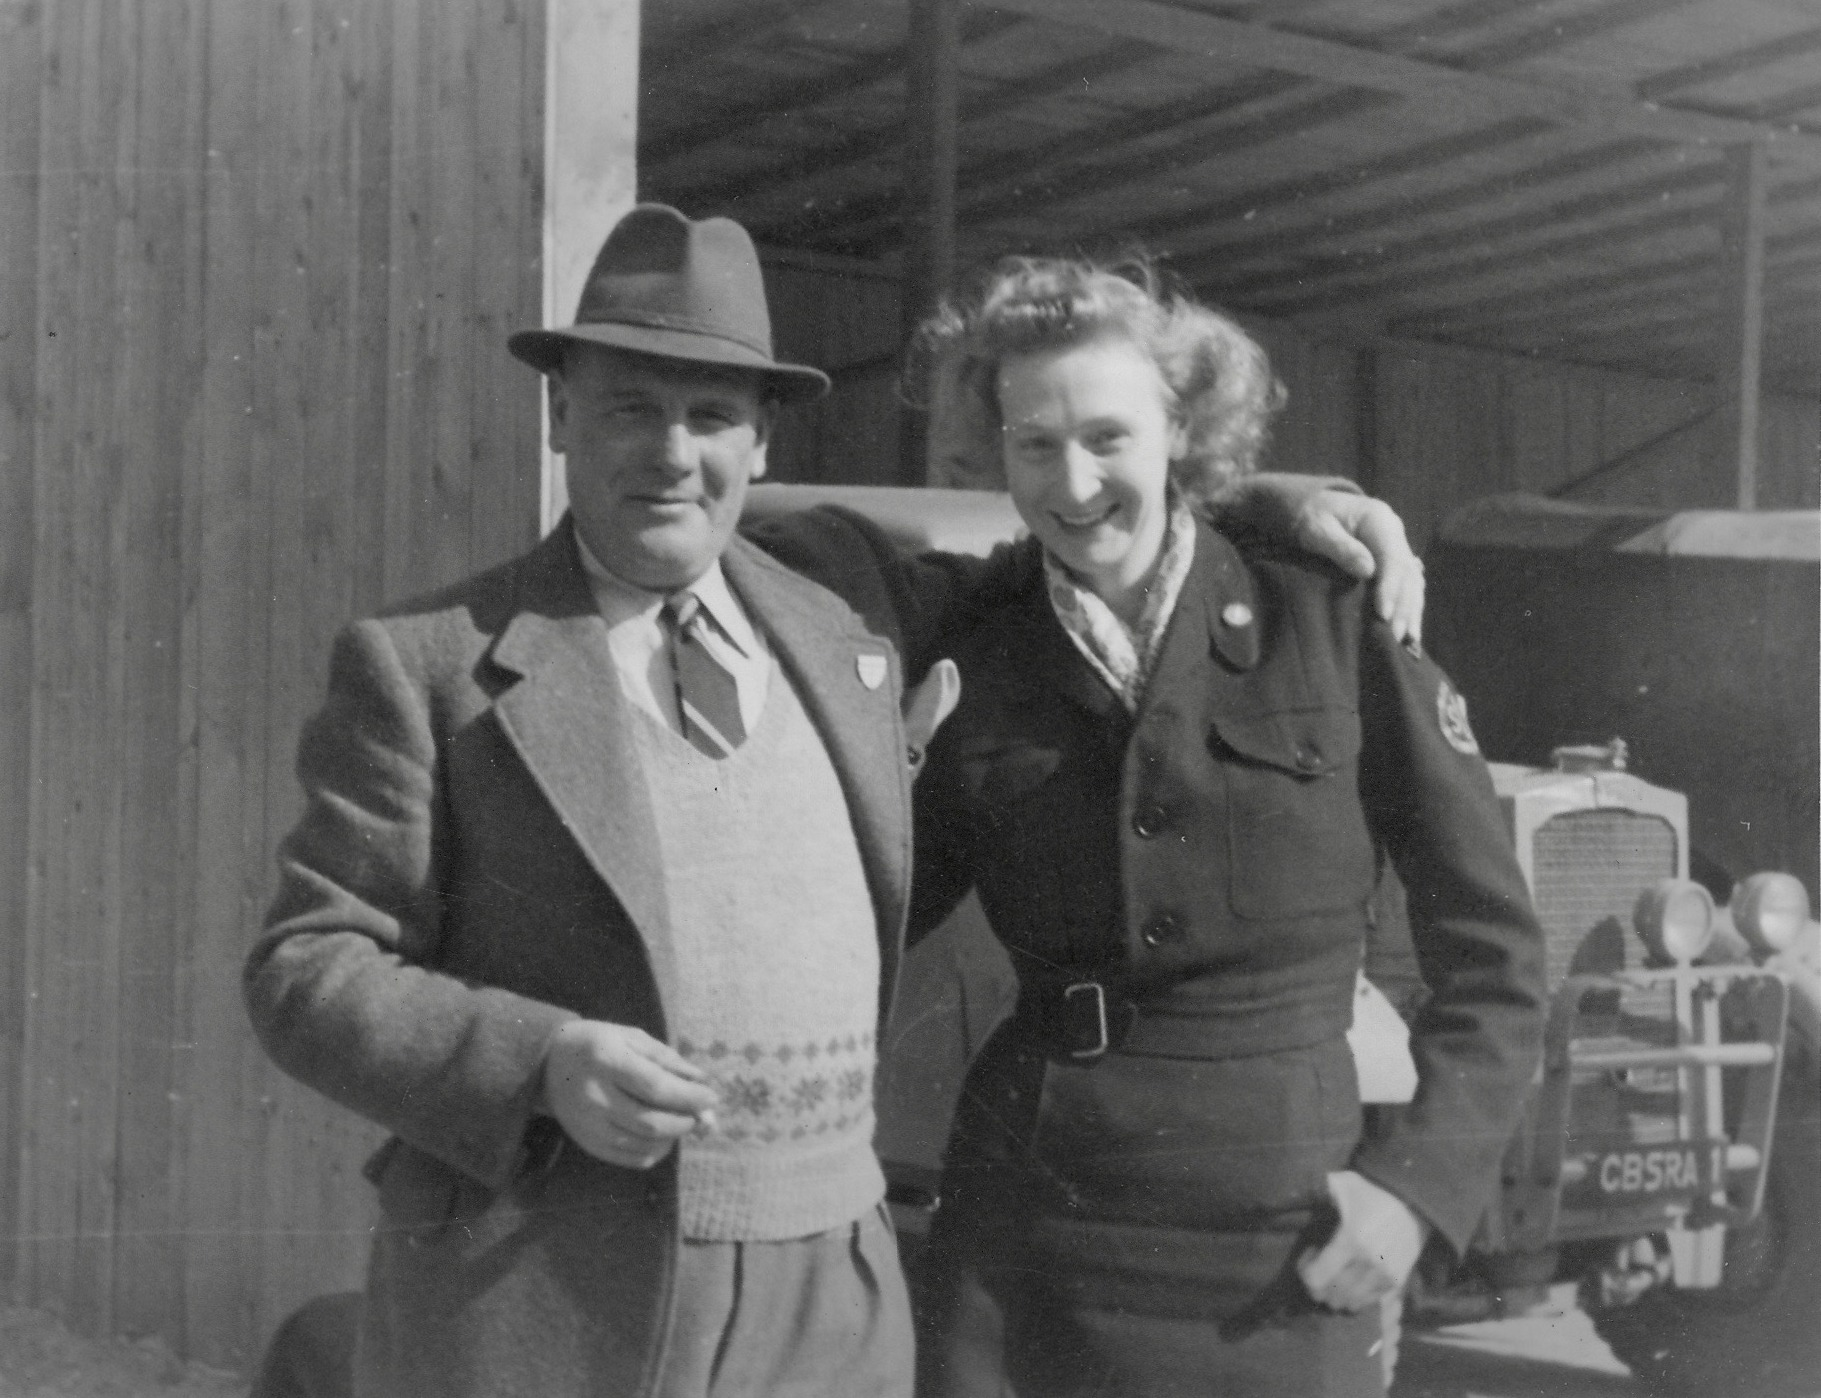 Kapfenberg Westward Ho camp, Major Dewar & Clare McMurray 1949